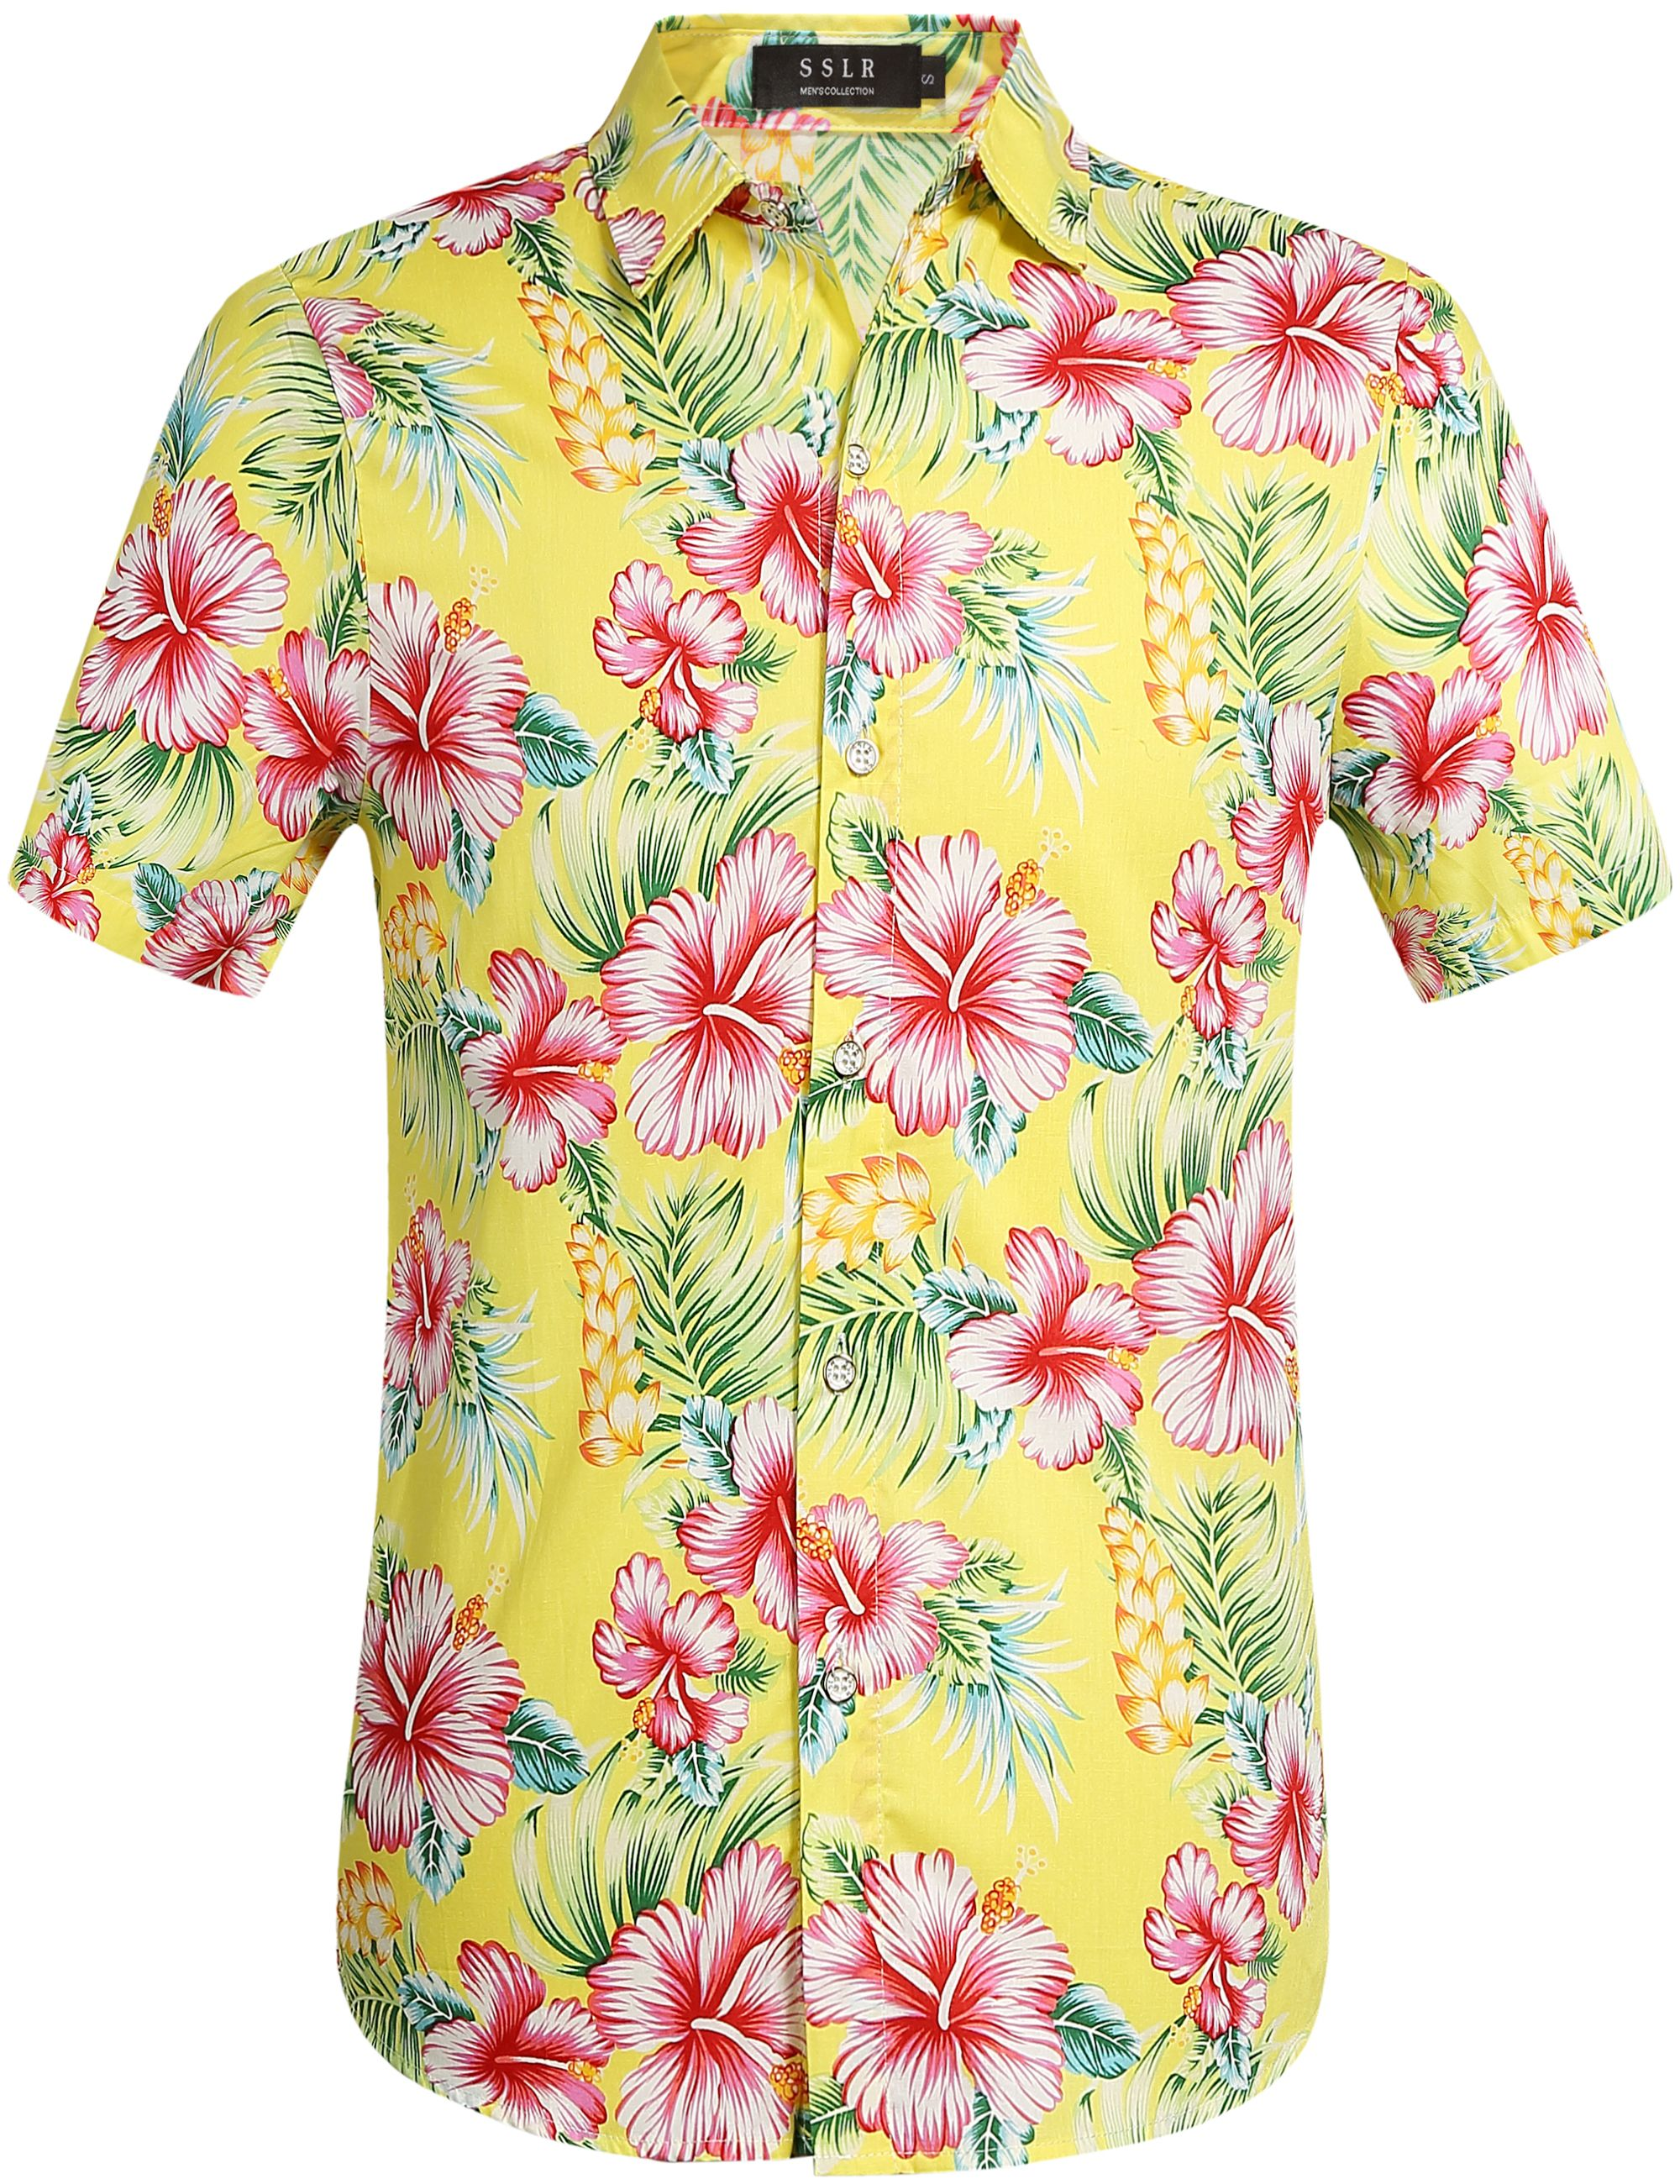 7c90a38c $22.00 Mellow Yellow Tropical Floral Print Hawaiian Shirt # Top summer  outfit